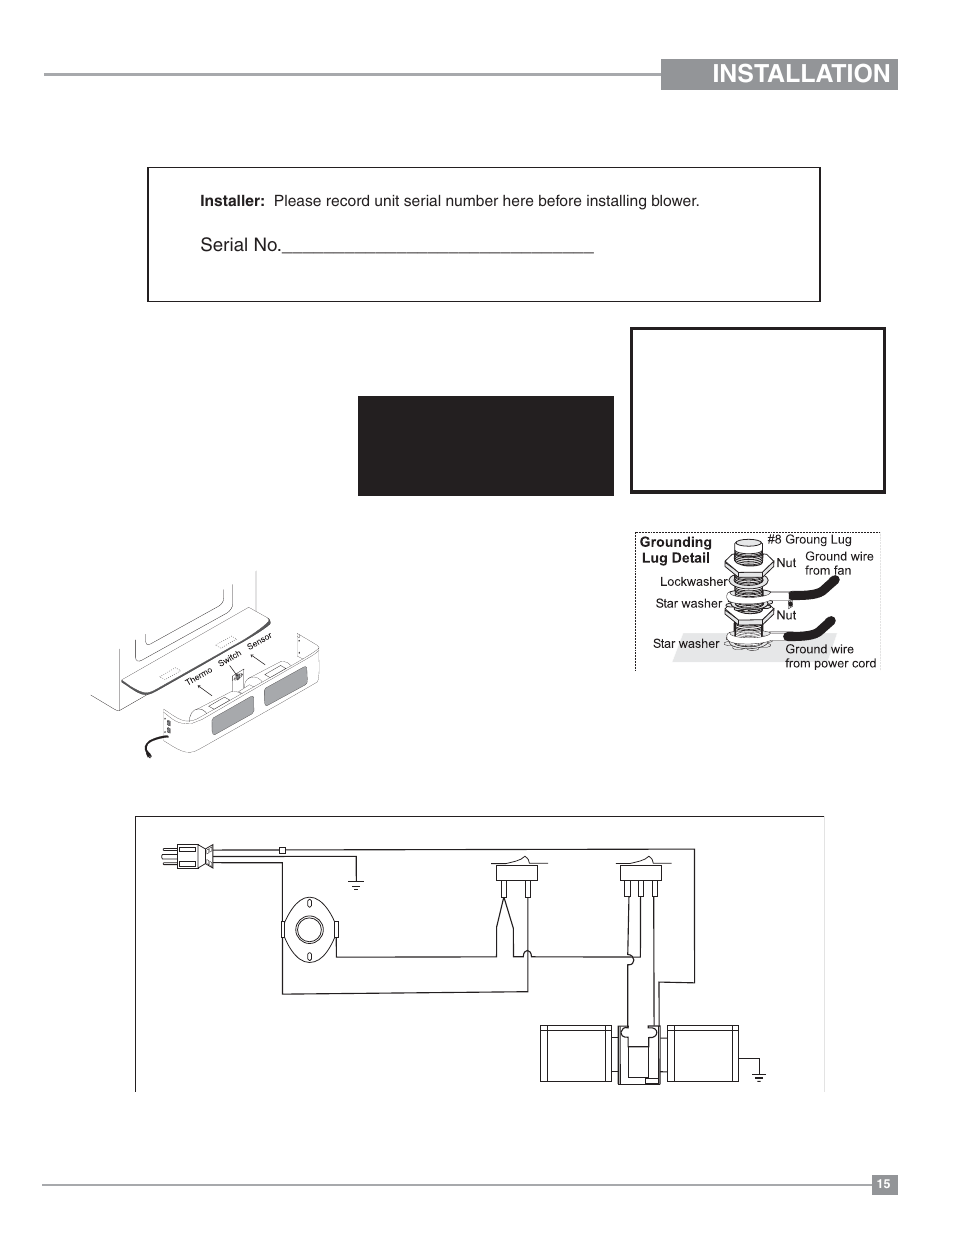 Installation Fan Blower Serial No Regency Classic I1200 Small Wire Diagram Wood Insert User Manual Page 15 24